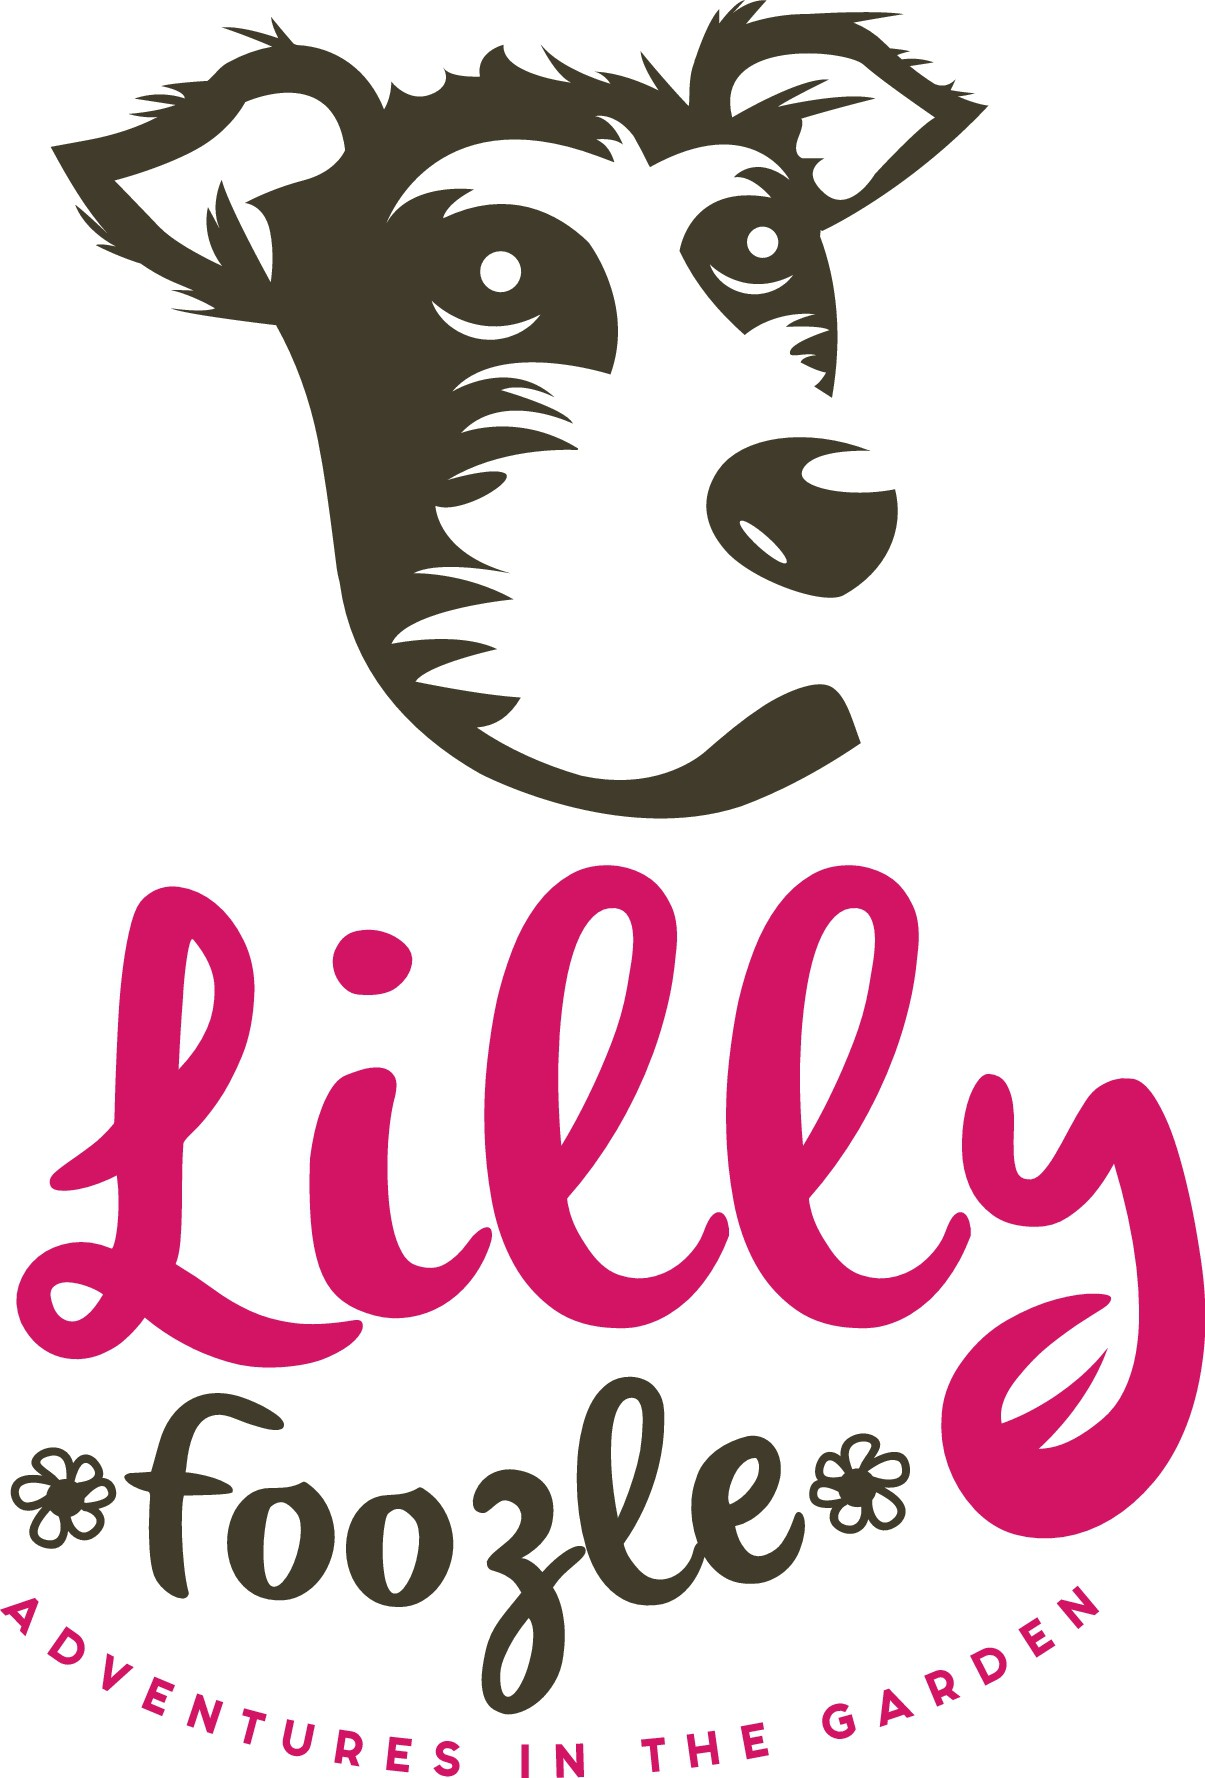 Design for Lilly Foozle brand